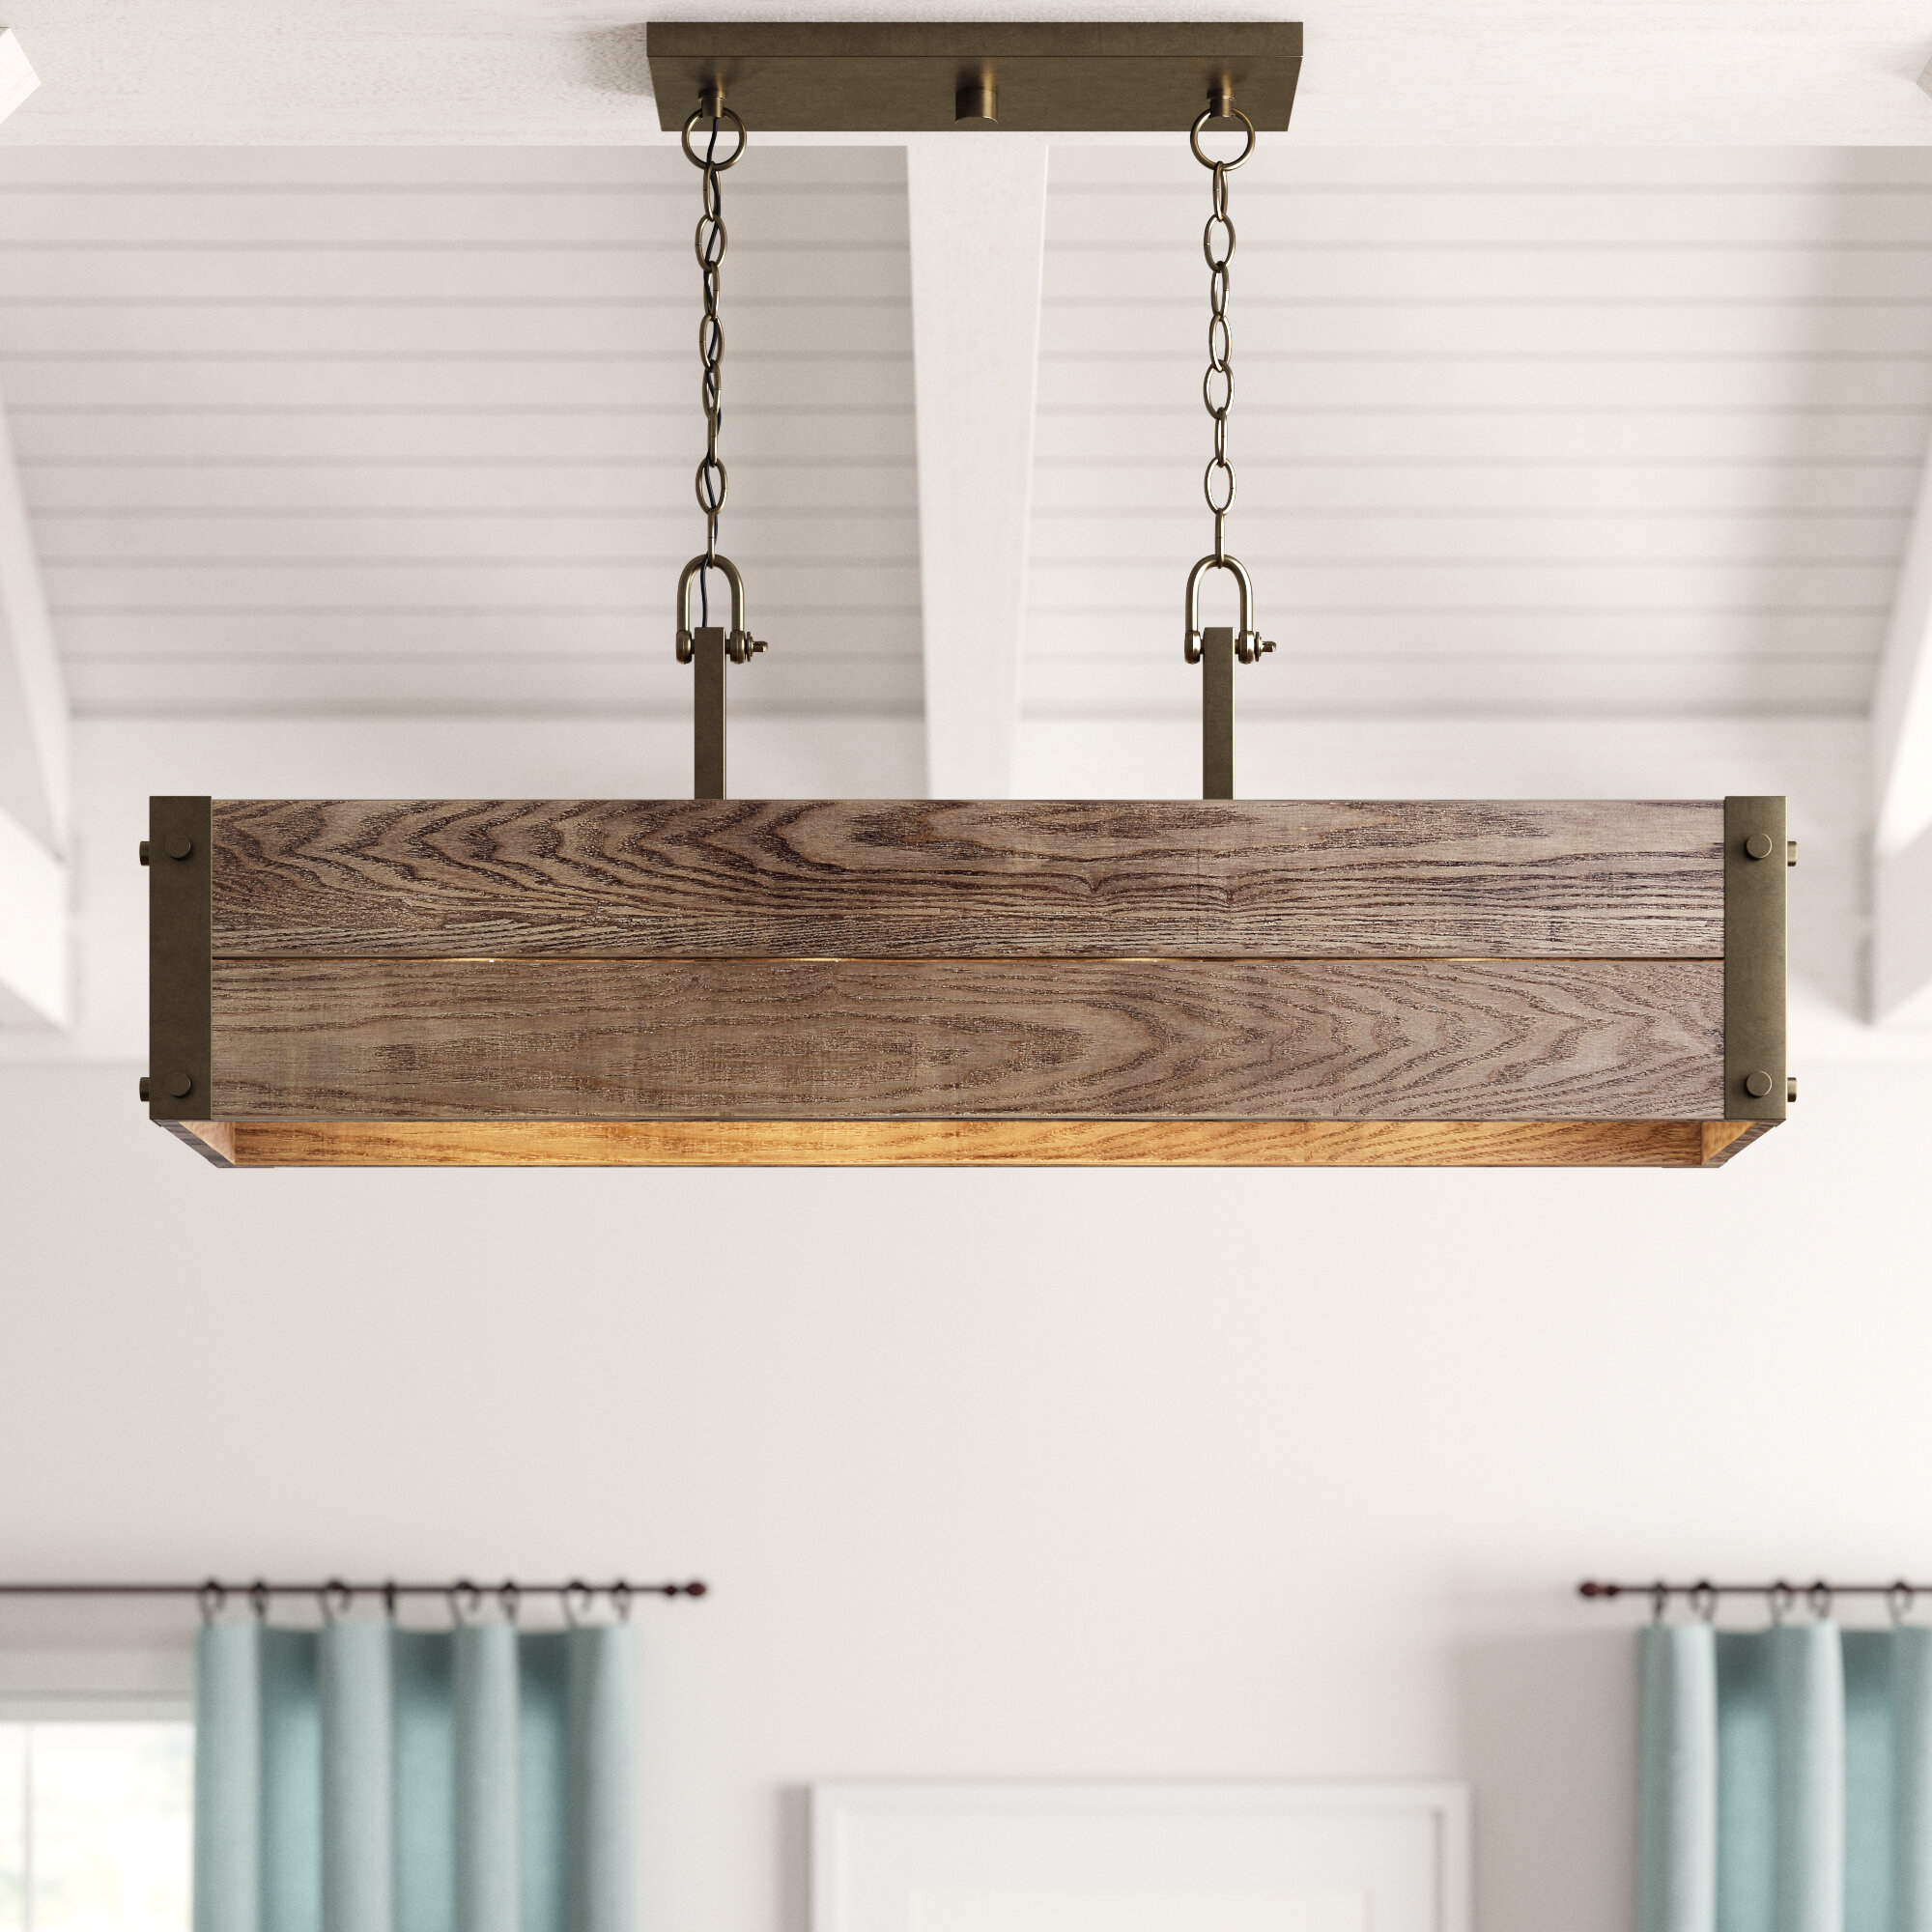 Cathey 4 Light Kitchen Island Linear Pendant Intended For Euclid 2 Light Kitchen Island Linear Pendants (View 7 of 30)